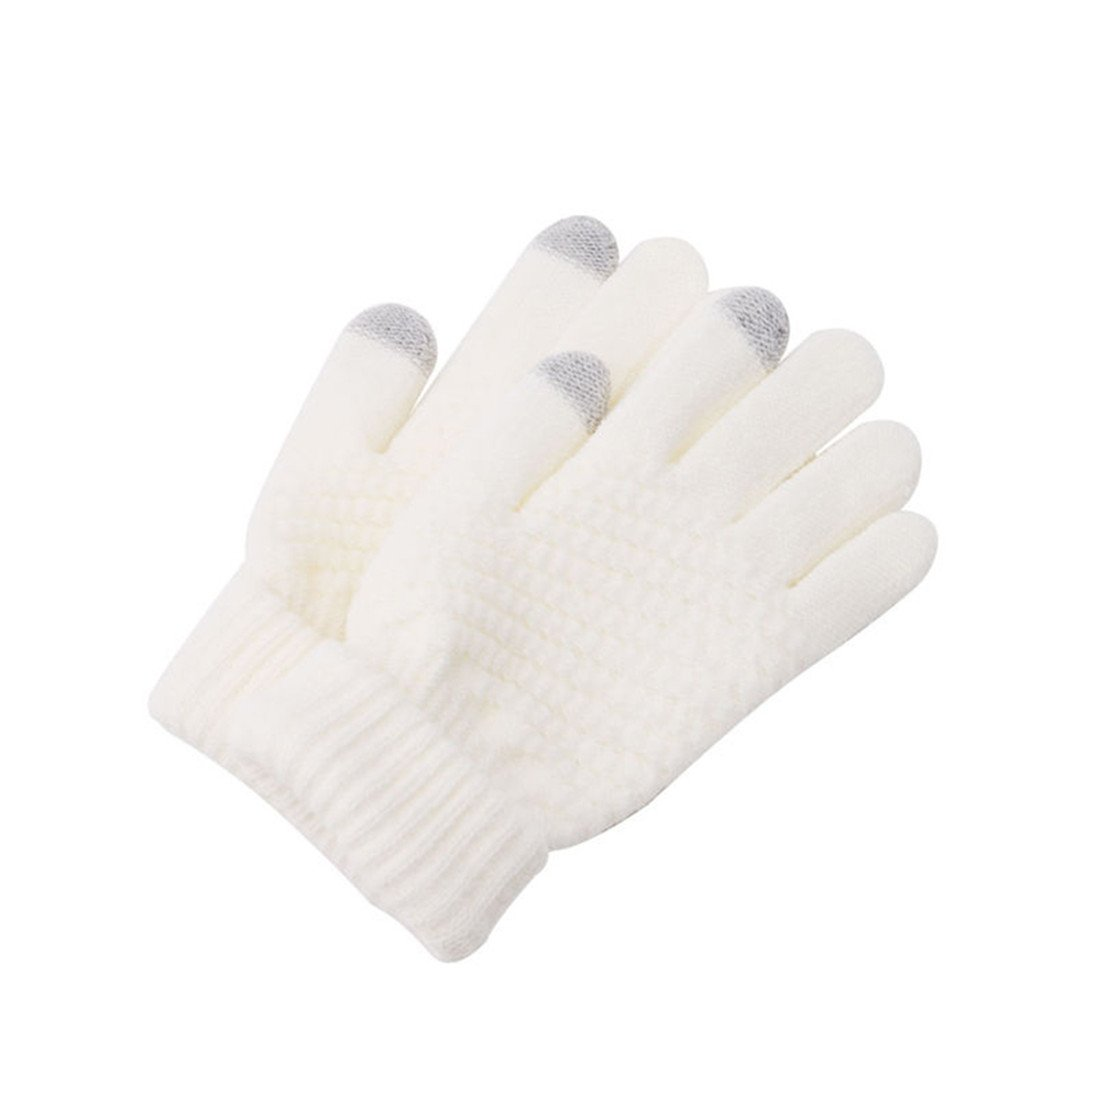 Colorido Women Winter Warm Full Finger Knitted Touch Screen Gloves Mittens size One Size (White)